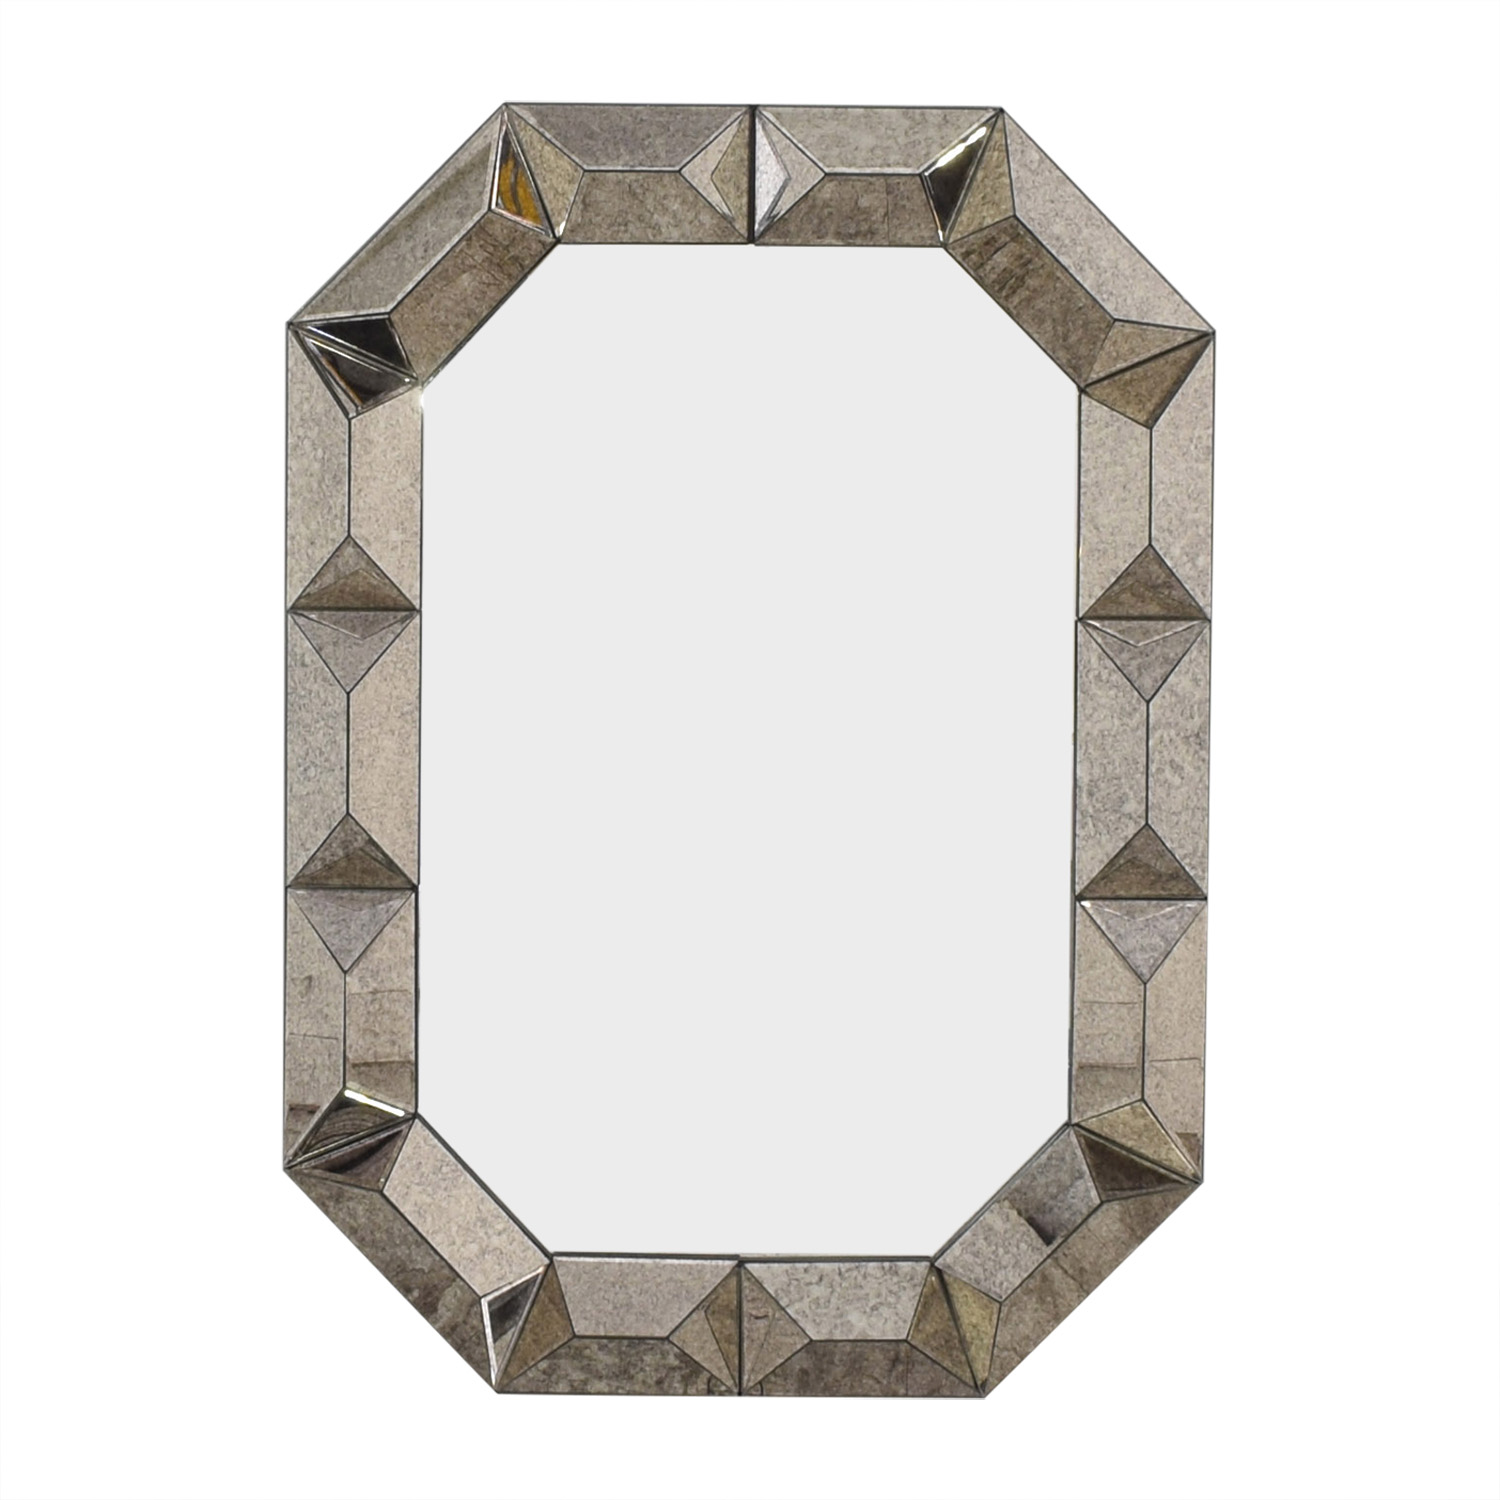 Bungalow 5 Bungalow 5 Romano Wall Mirror price